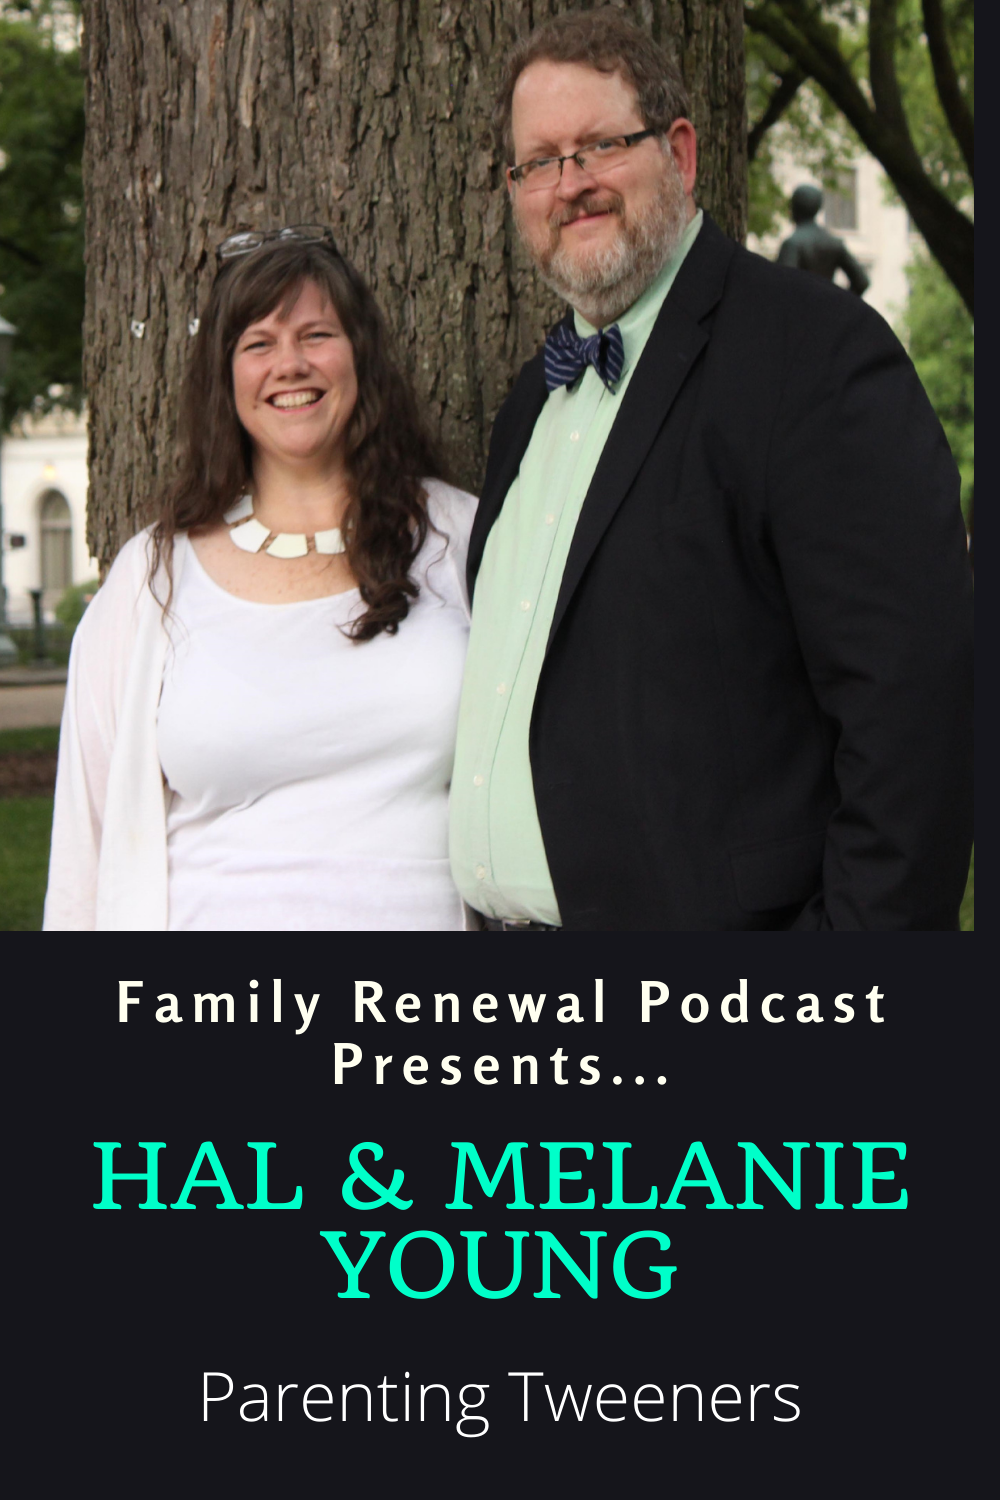 Hal & Melanie Young discuss parenting tweeners with Israel Wayne.